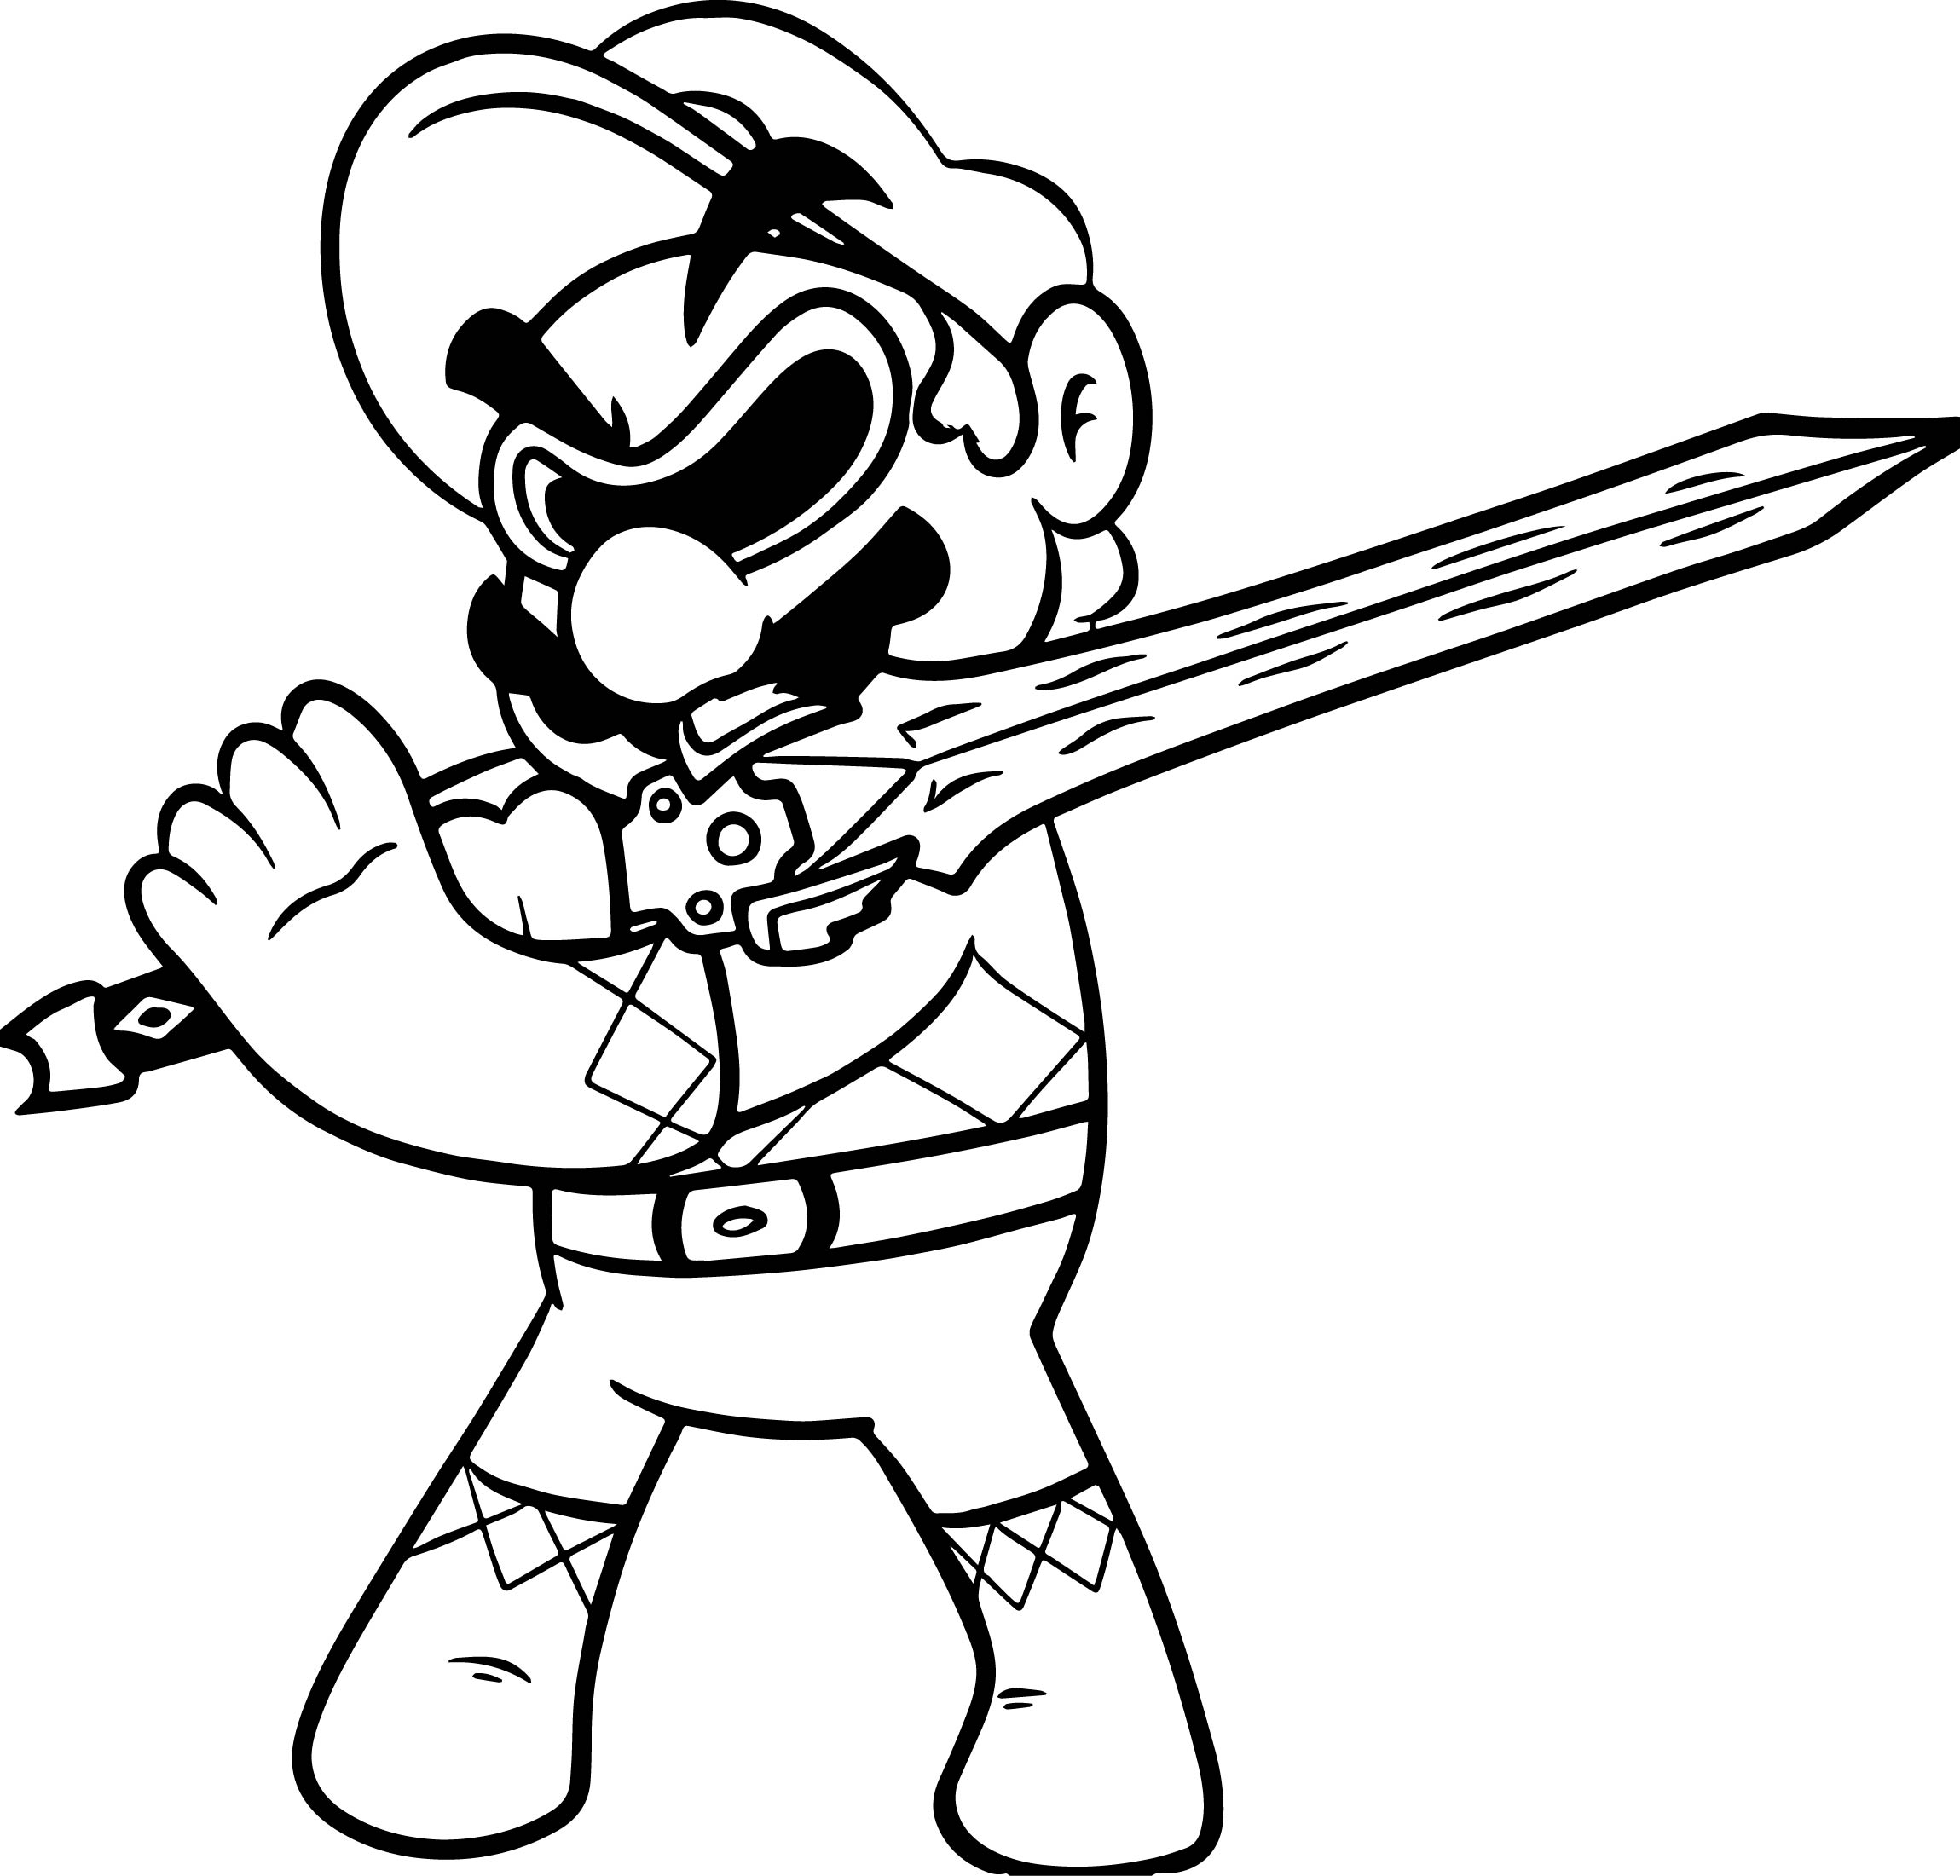 power ranger super mario coloring page wecoloringpage